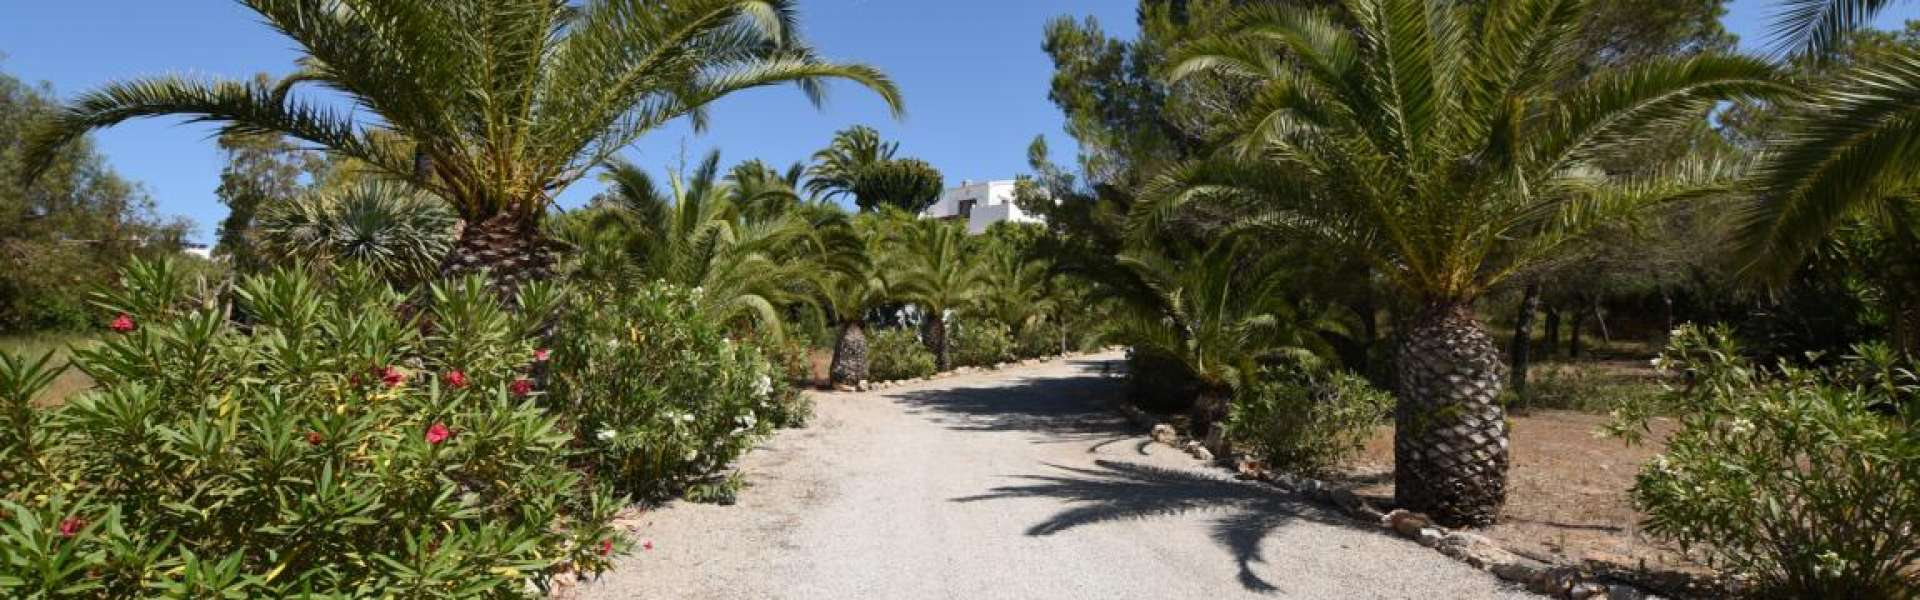 Seaview-Property close to Colonia Sant Jordi